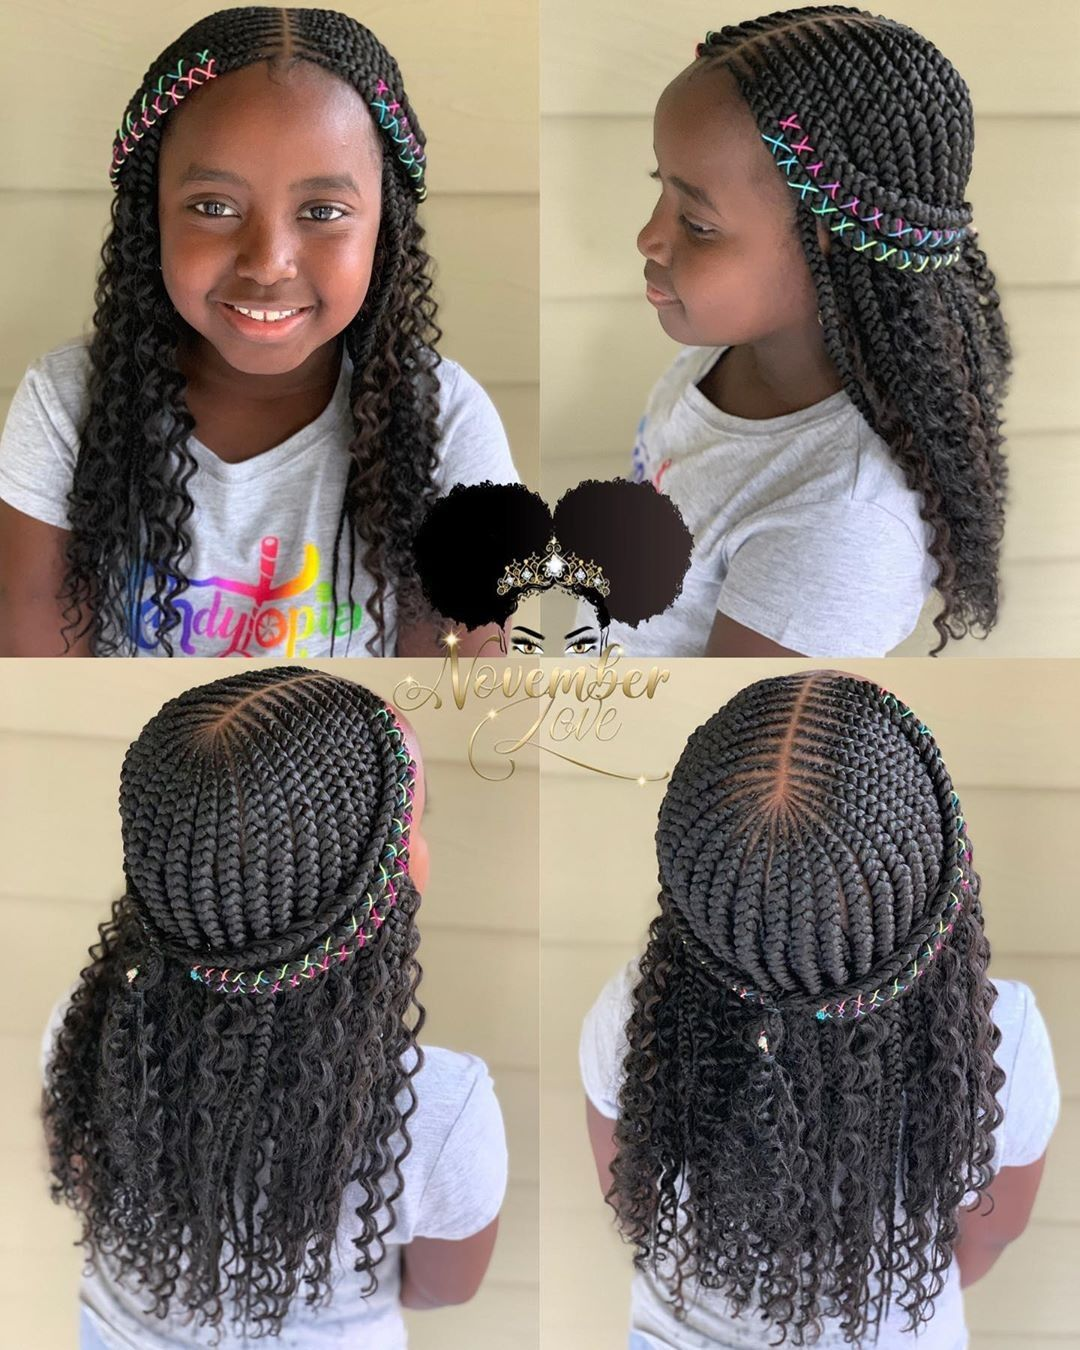 2019 Lovely Stunning Braids For Kids Black Kids Hairstyles Kids Braided Hairstyles Black Girl Braided Hairstyles